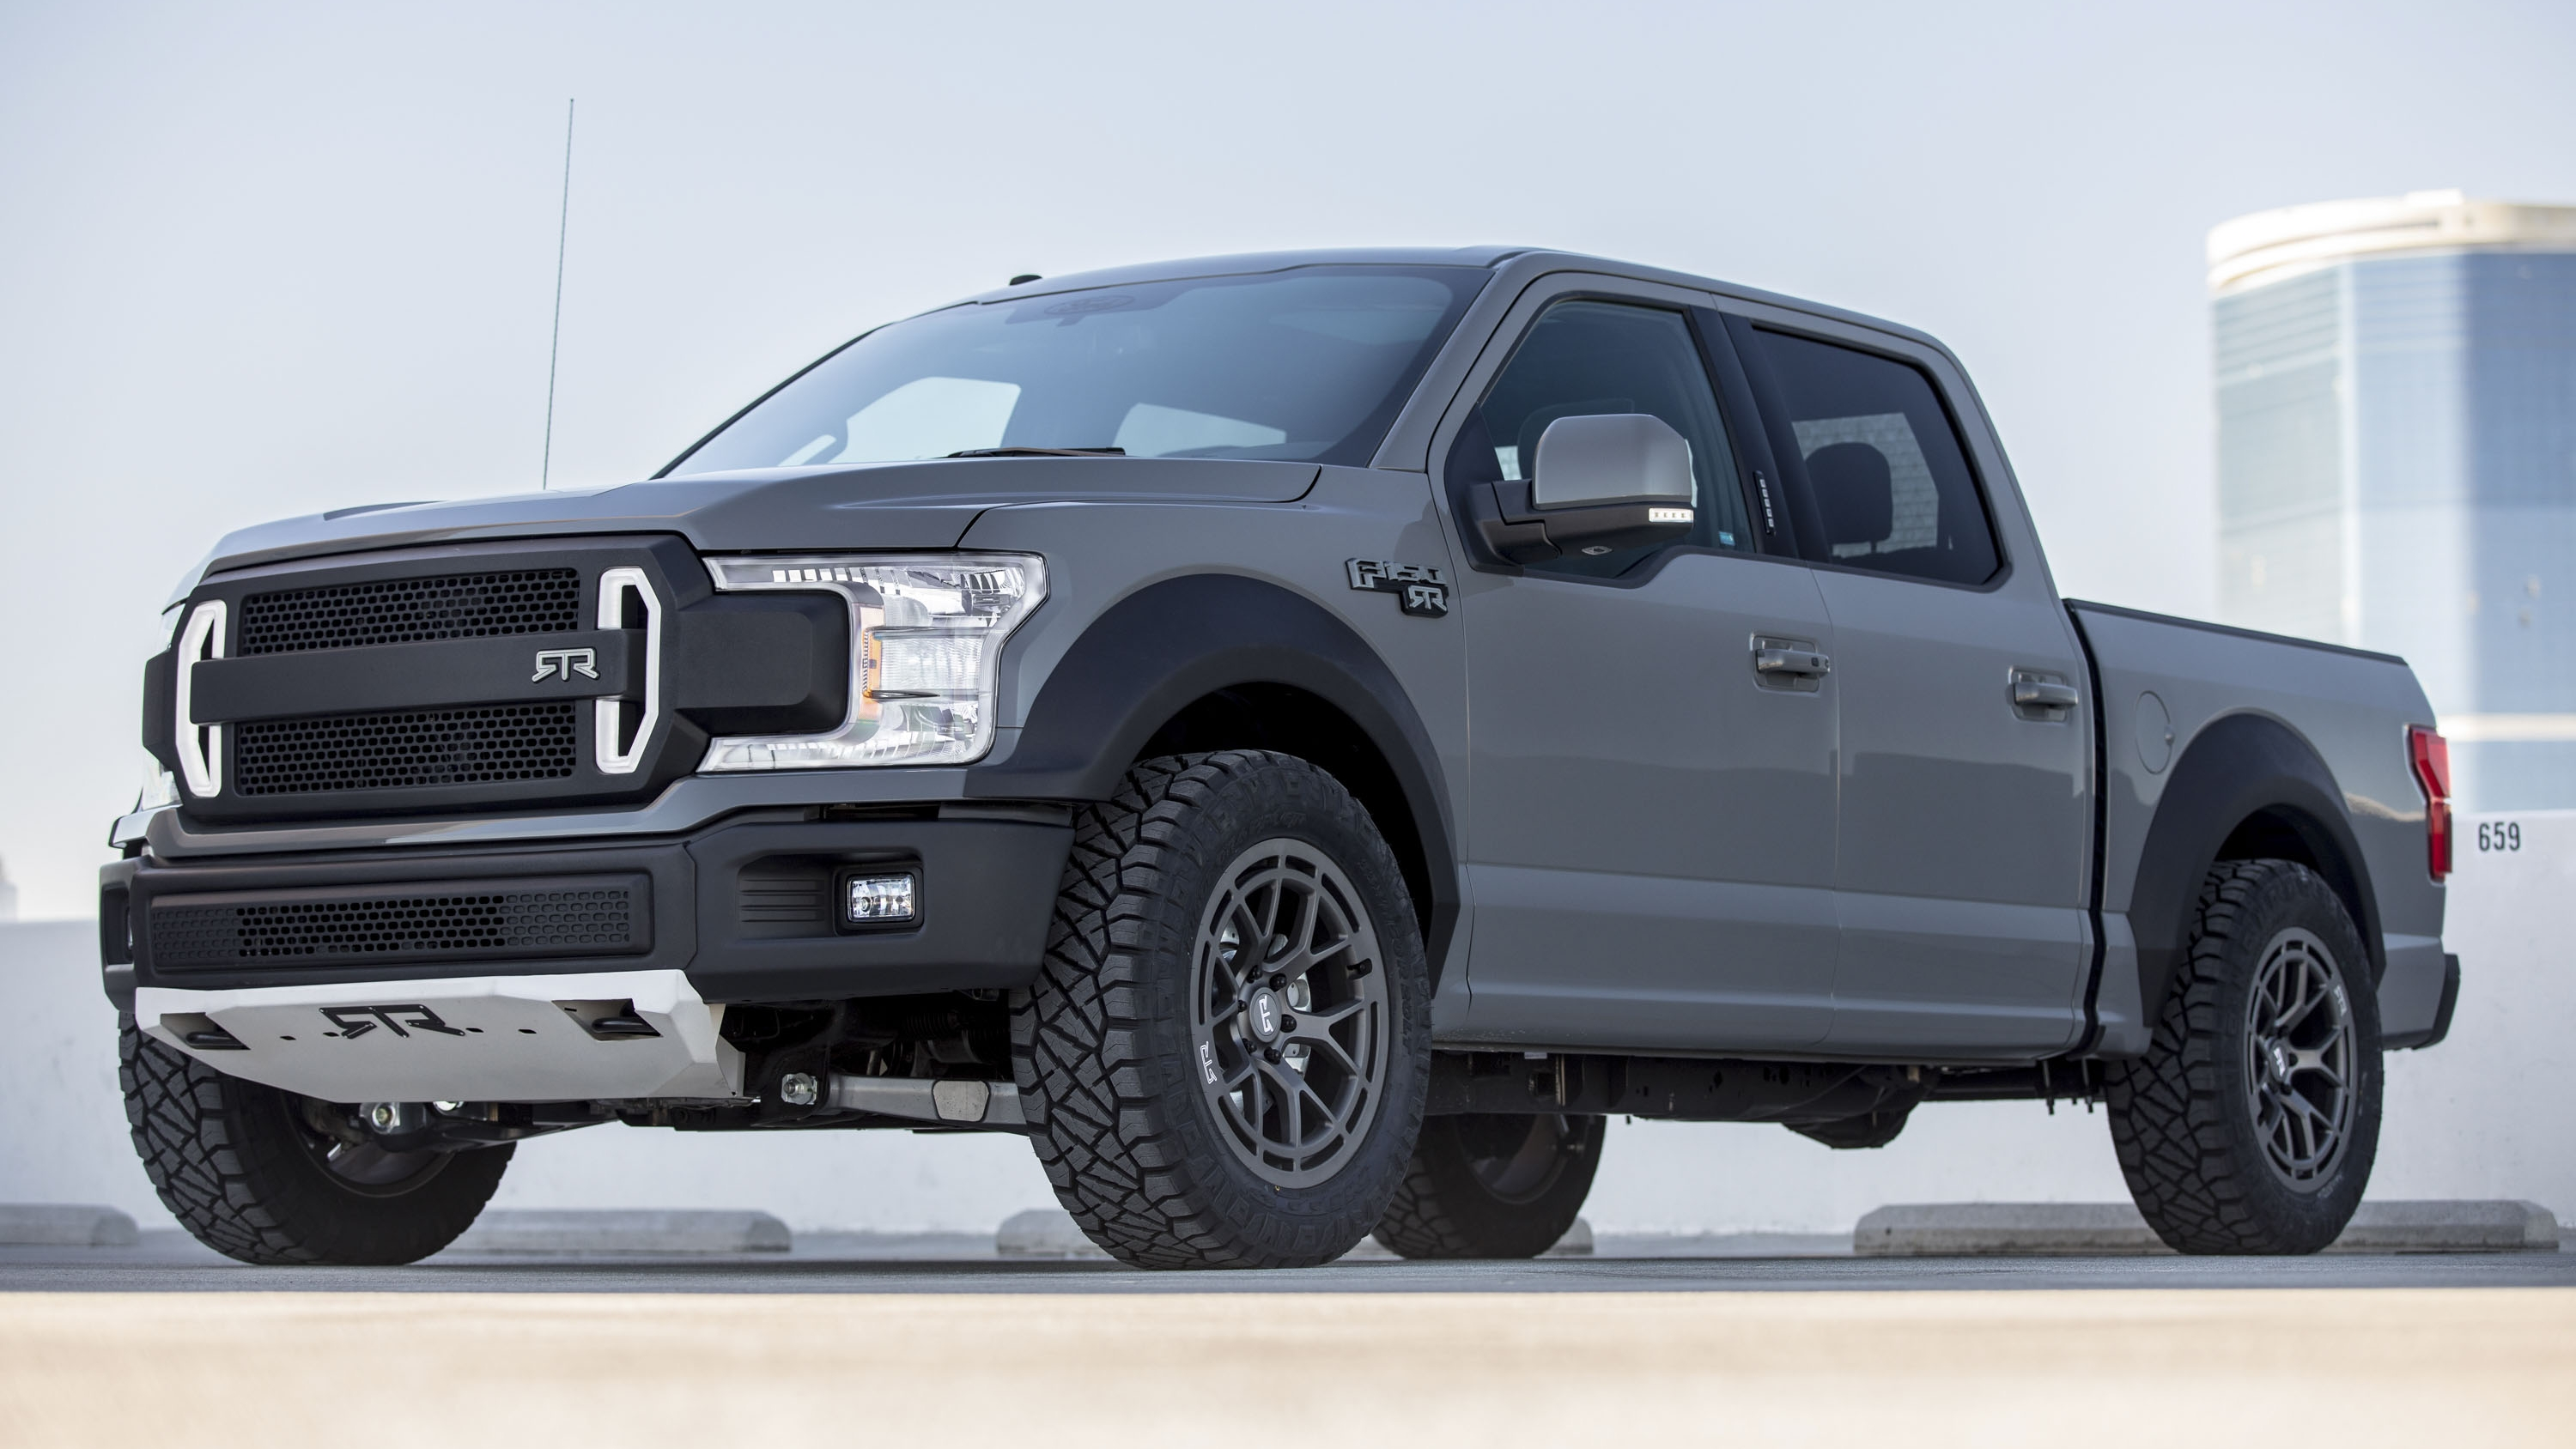 2017 ford f 150 rtr muscle truck review gallery top speed. Black Bedroom Furniture Sets. Home Design Ideas